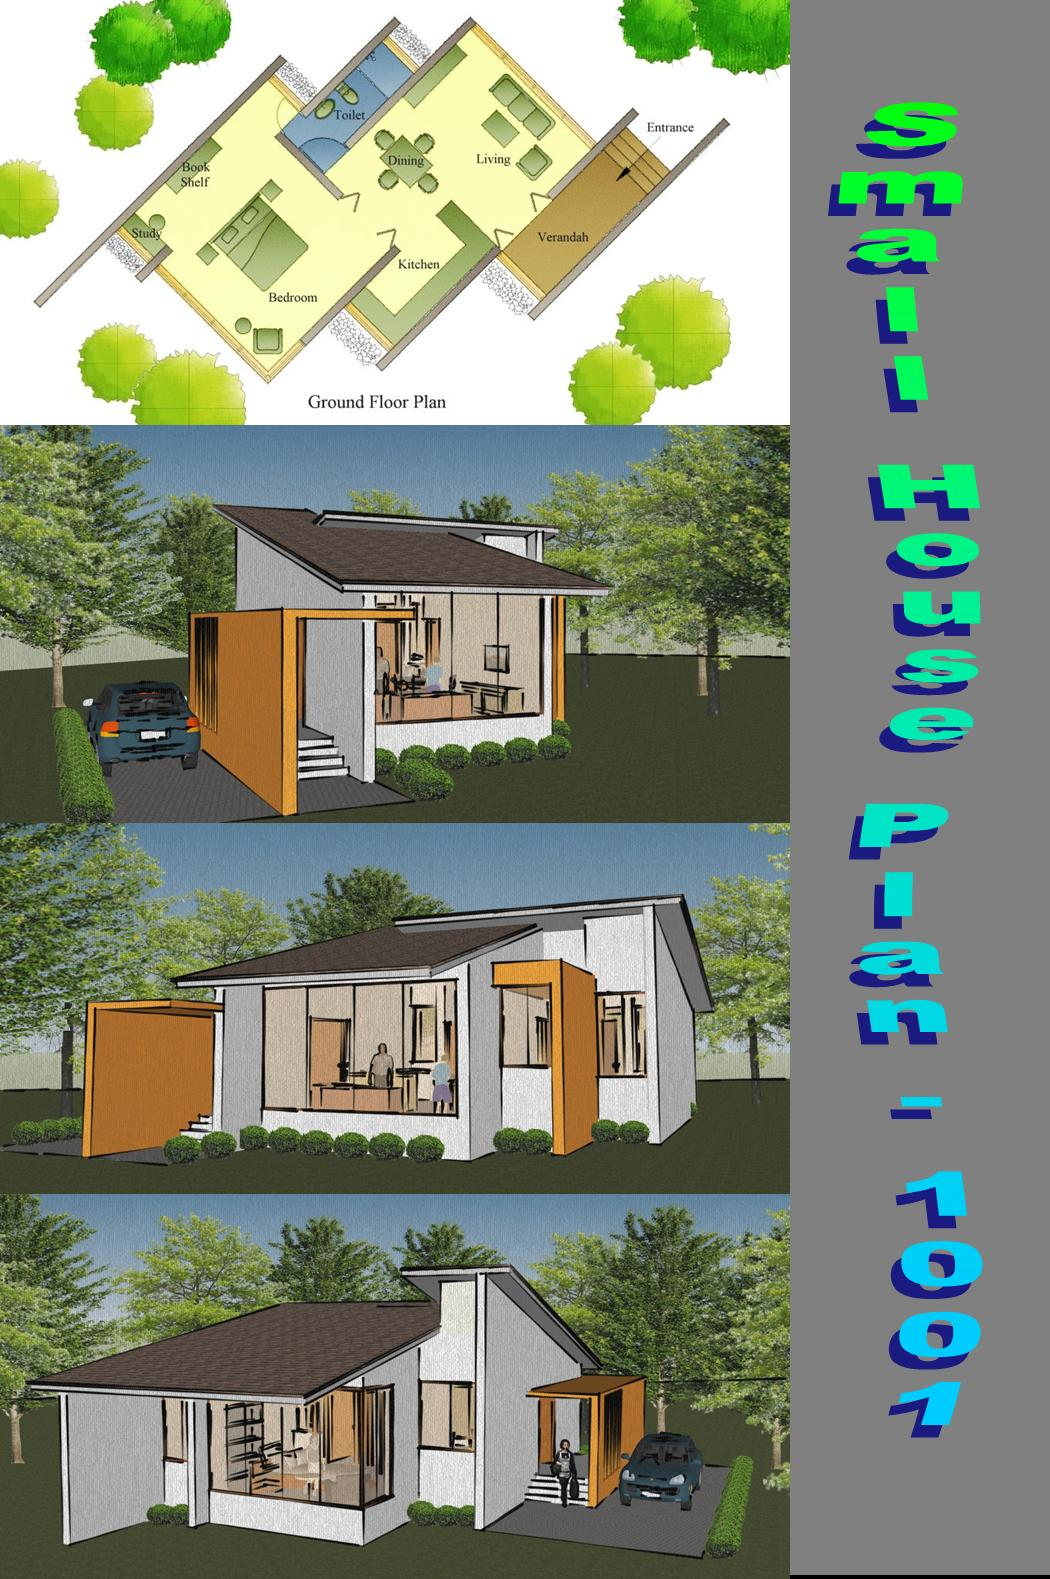 Home plans in india 5 best small home plans from for Indian small house plans